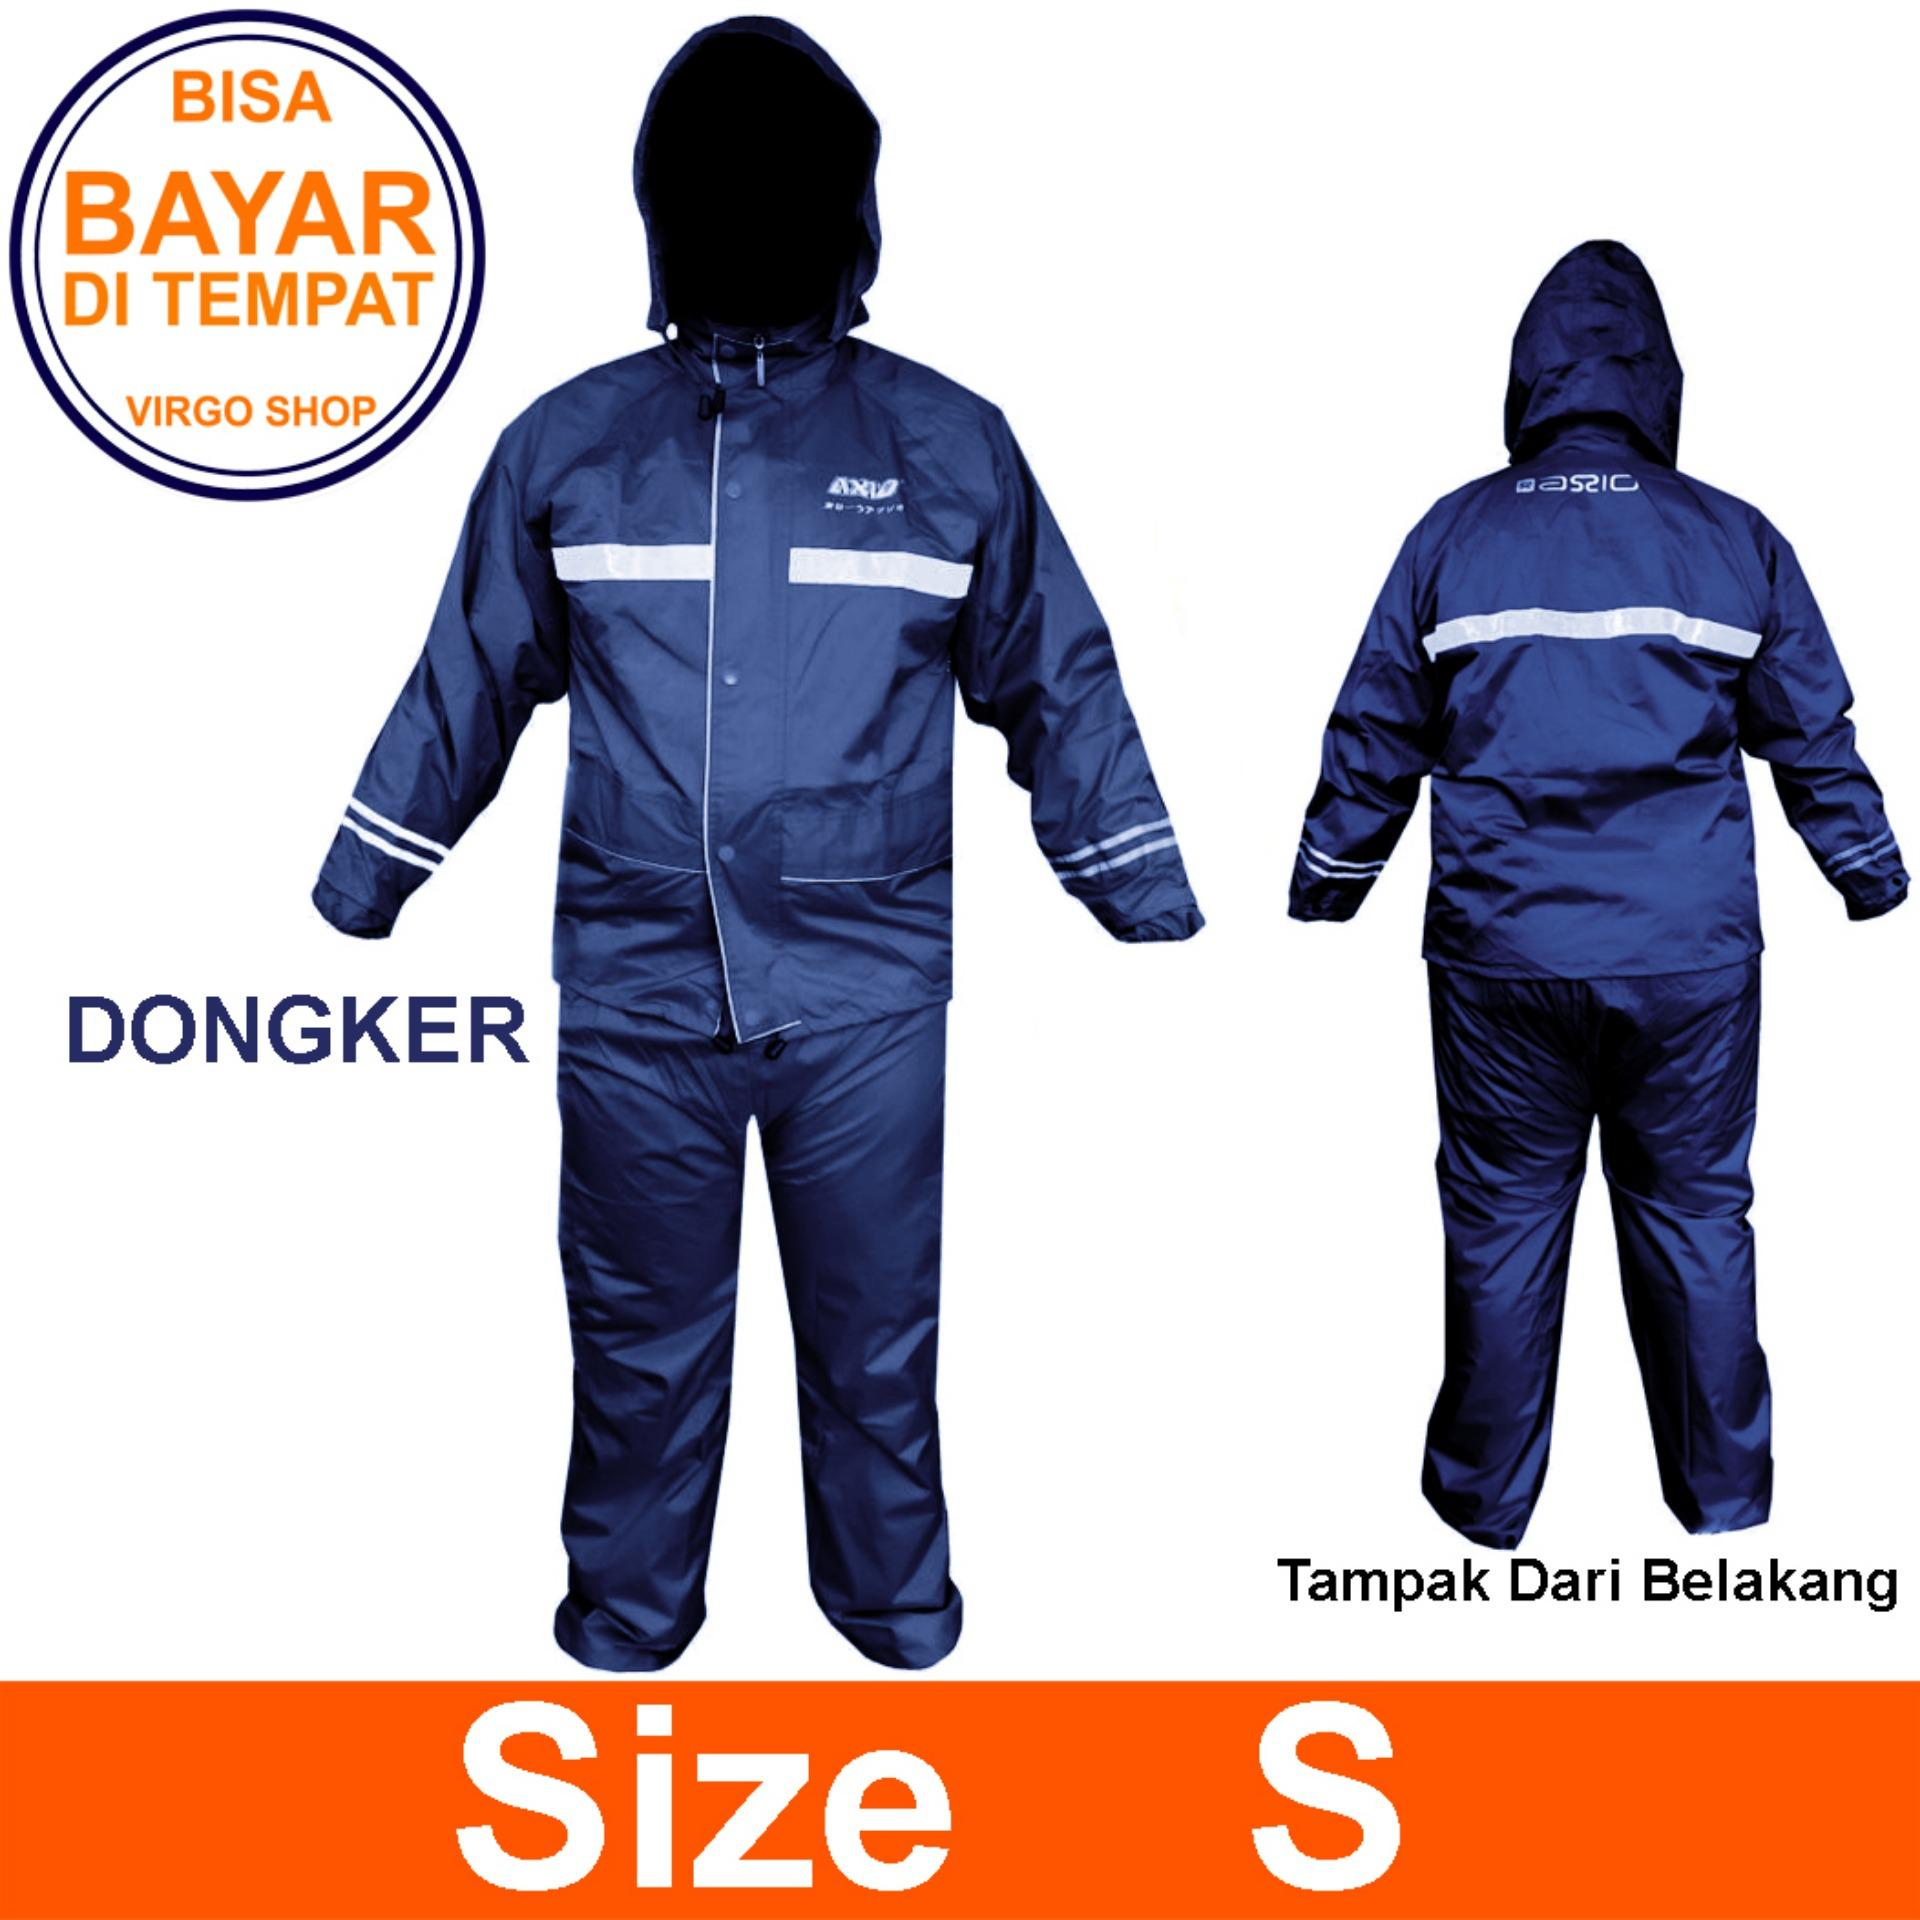 Axio Jas Hujan Axio Europe Original - Axio Europe Original Raincoat AX-882 - Navy